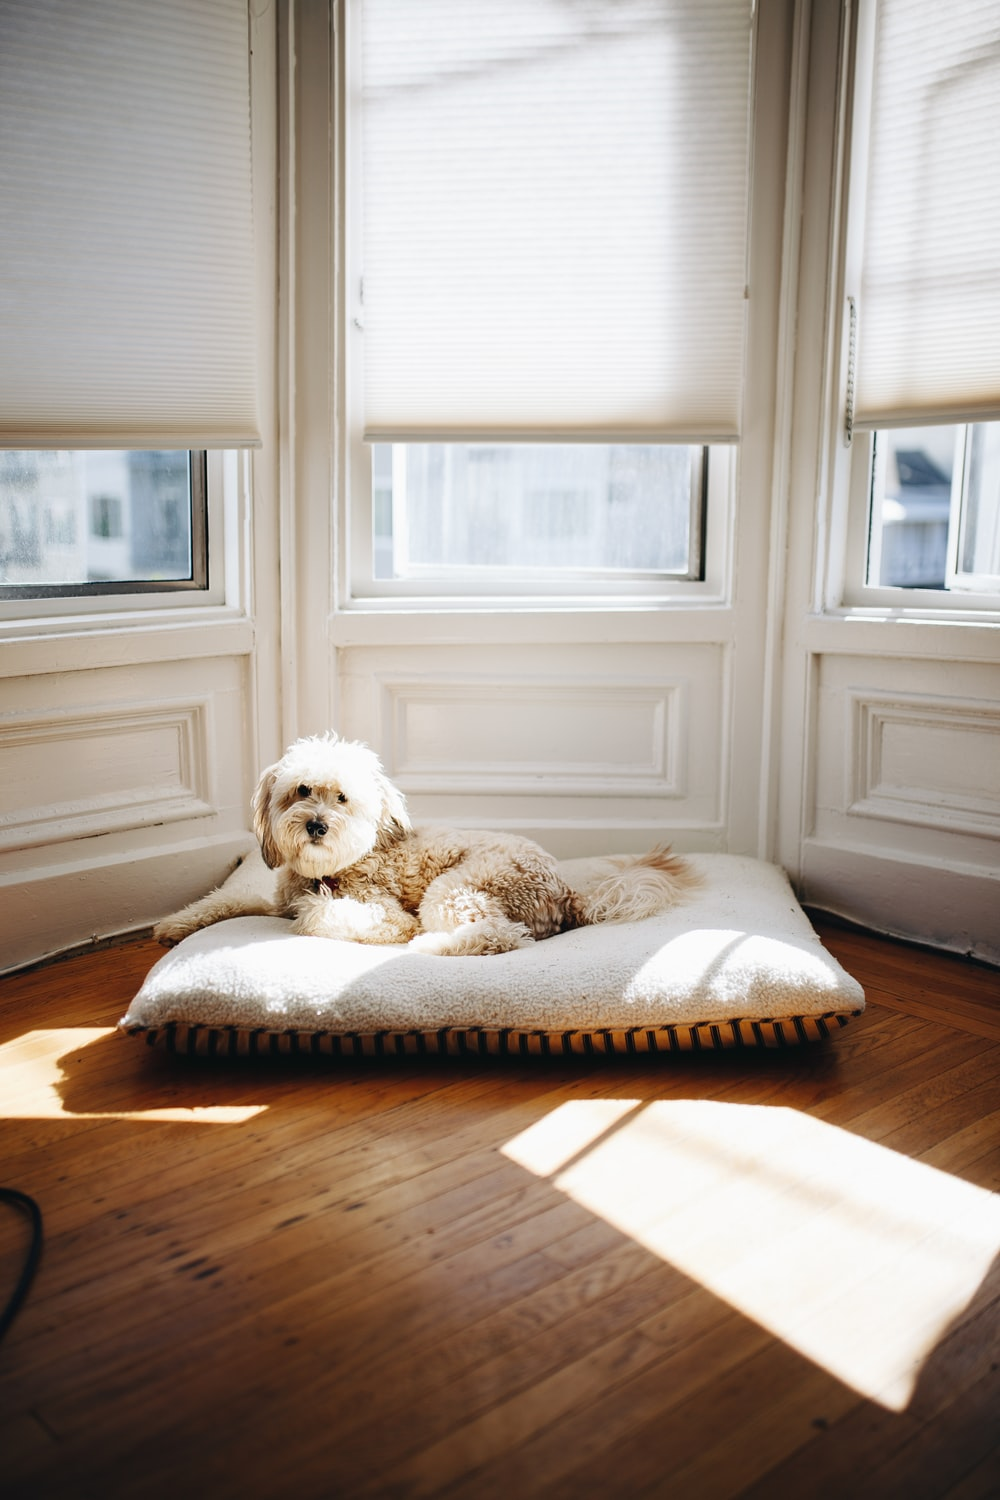 dog lying on pet bed near window with sun passing through